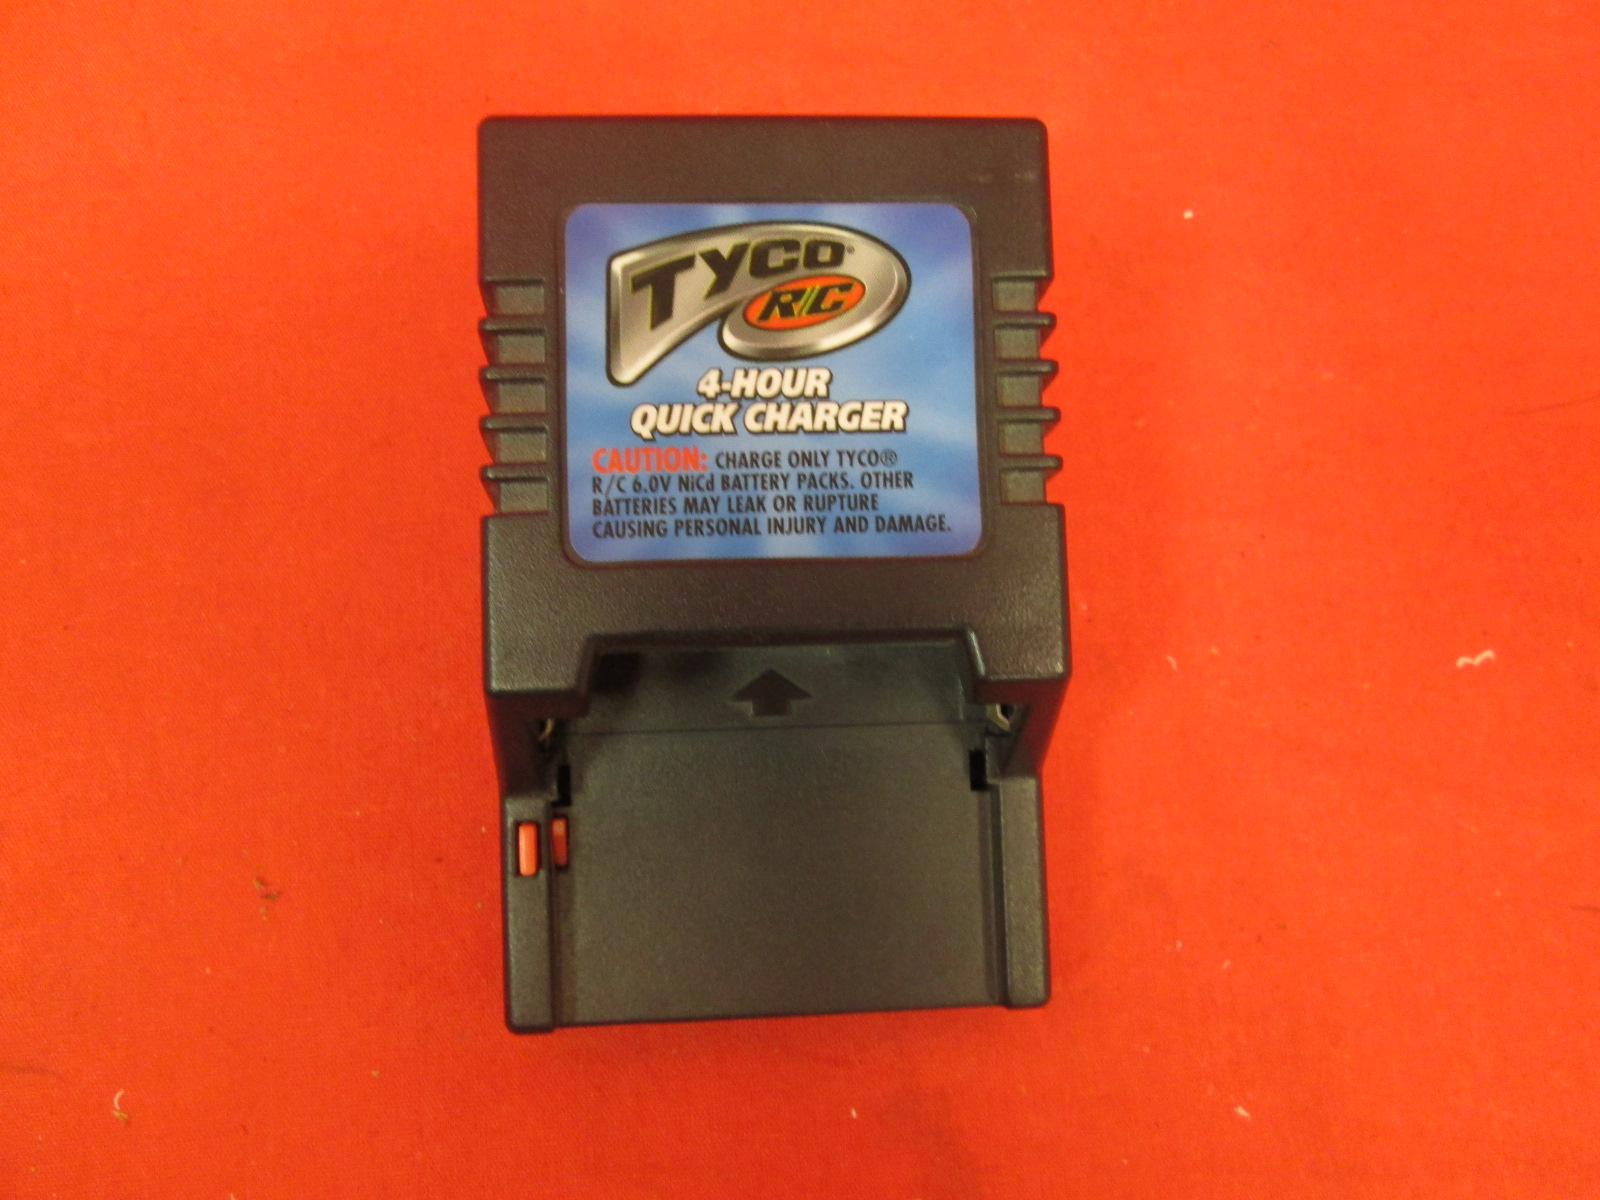 Tyco 32990 6V R/c Nicd 4-HOUR Quick Charger Battery Charger Only Toy